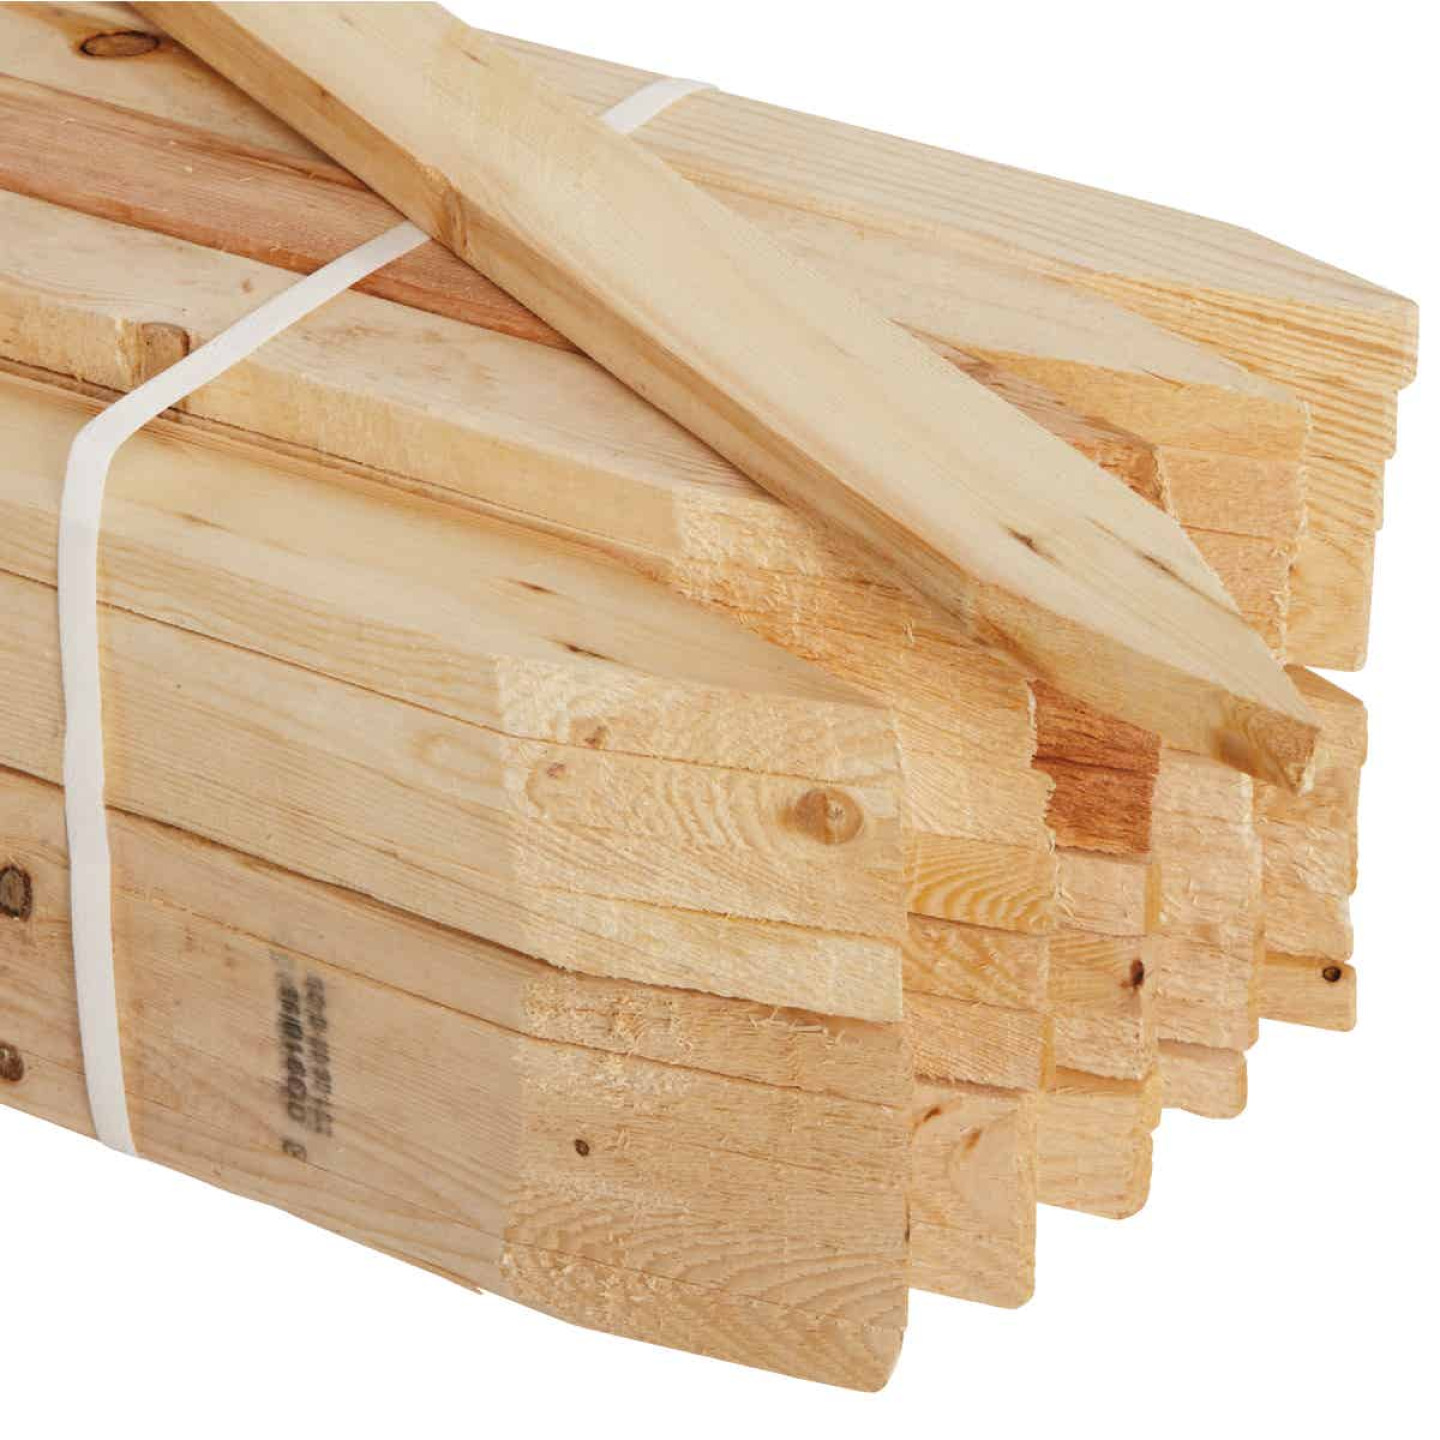 Kitzmans 3/8 In. x 1-1/2 In. x 48 In. Lath Stake (50-Pack) Image 2